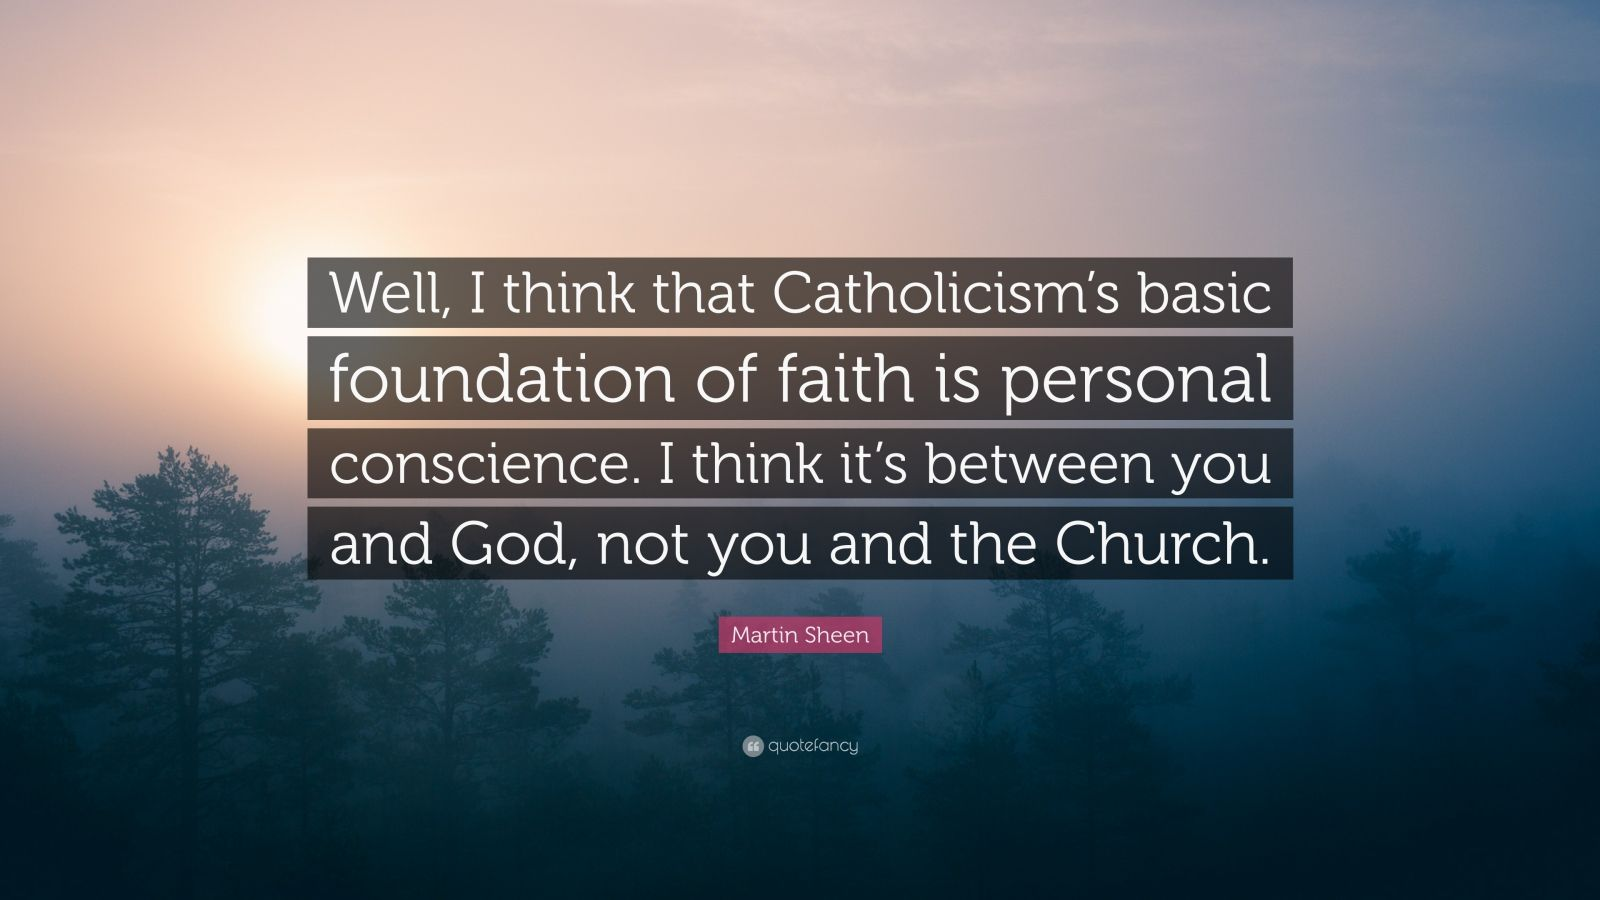 """Martin Sheen Quote: """"Well, I think that Catholicism's basic foundation of faith is personal conscience. I think it's between you and God, not you and the Church."""""""